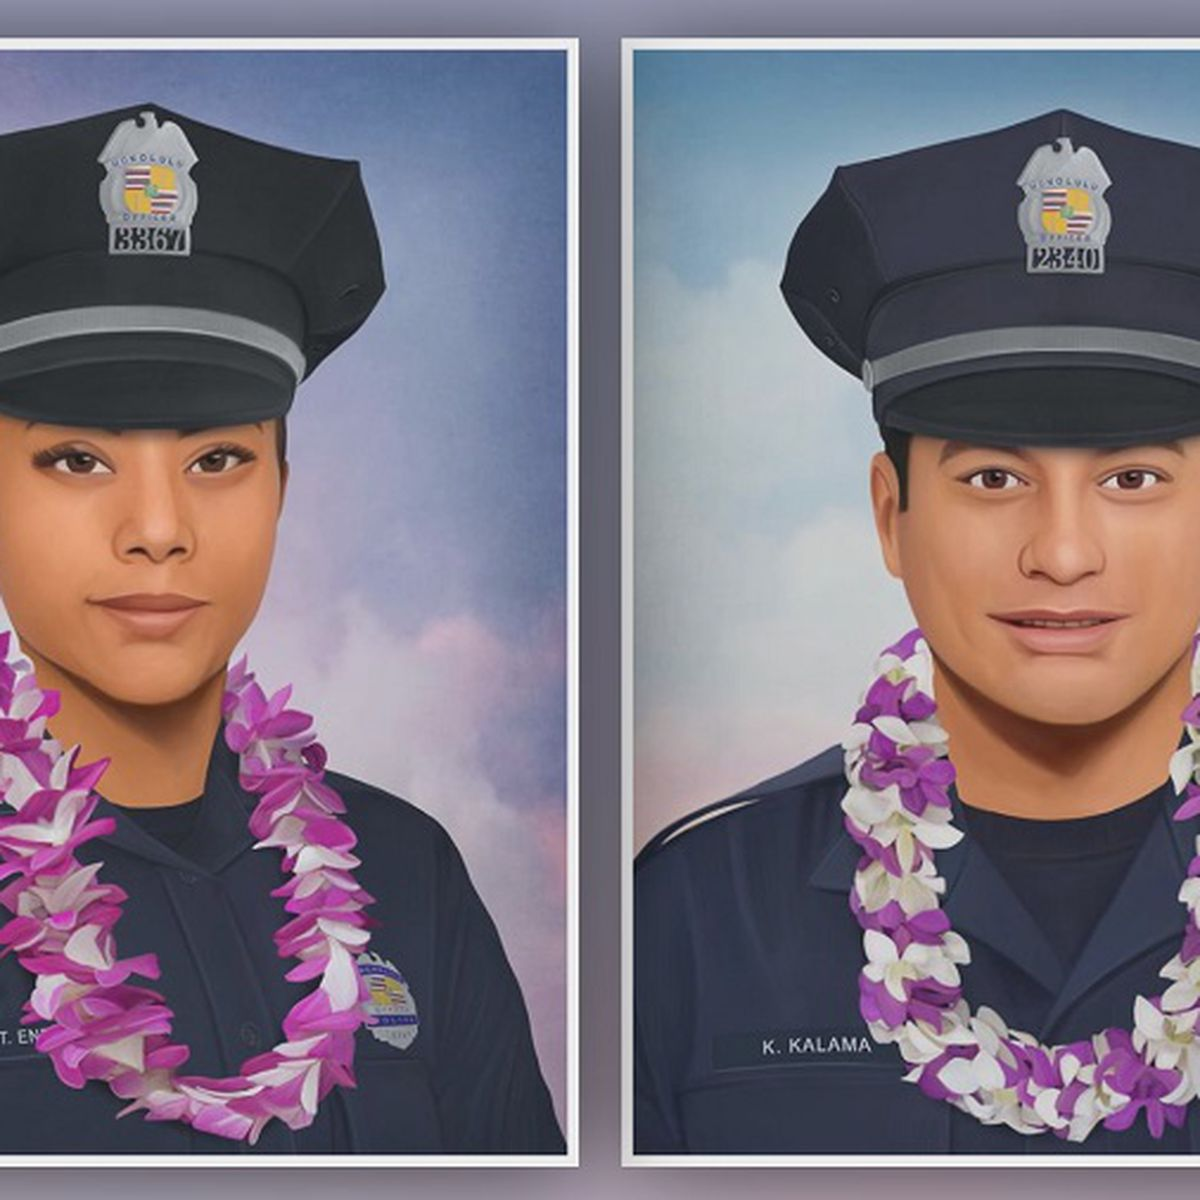 Philadelphia-based artist shares touching tribute to 2 fallen Honolulu police officers